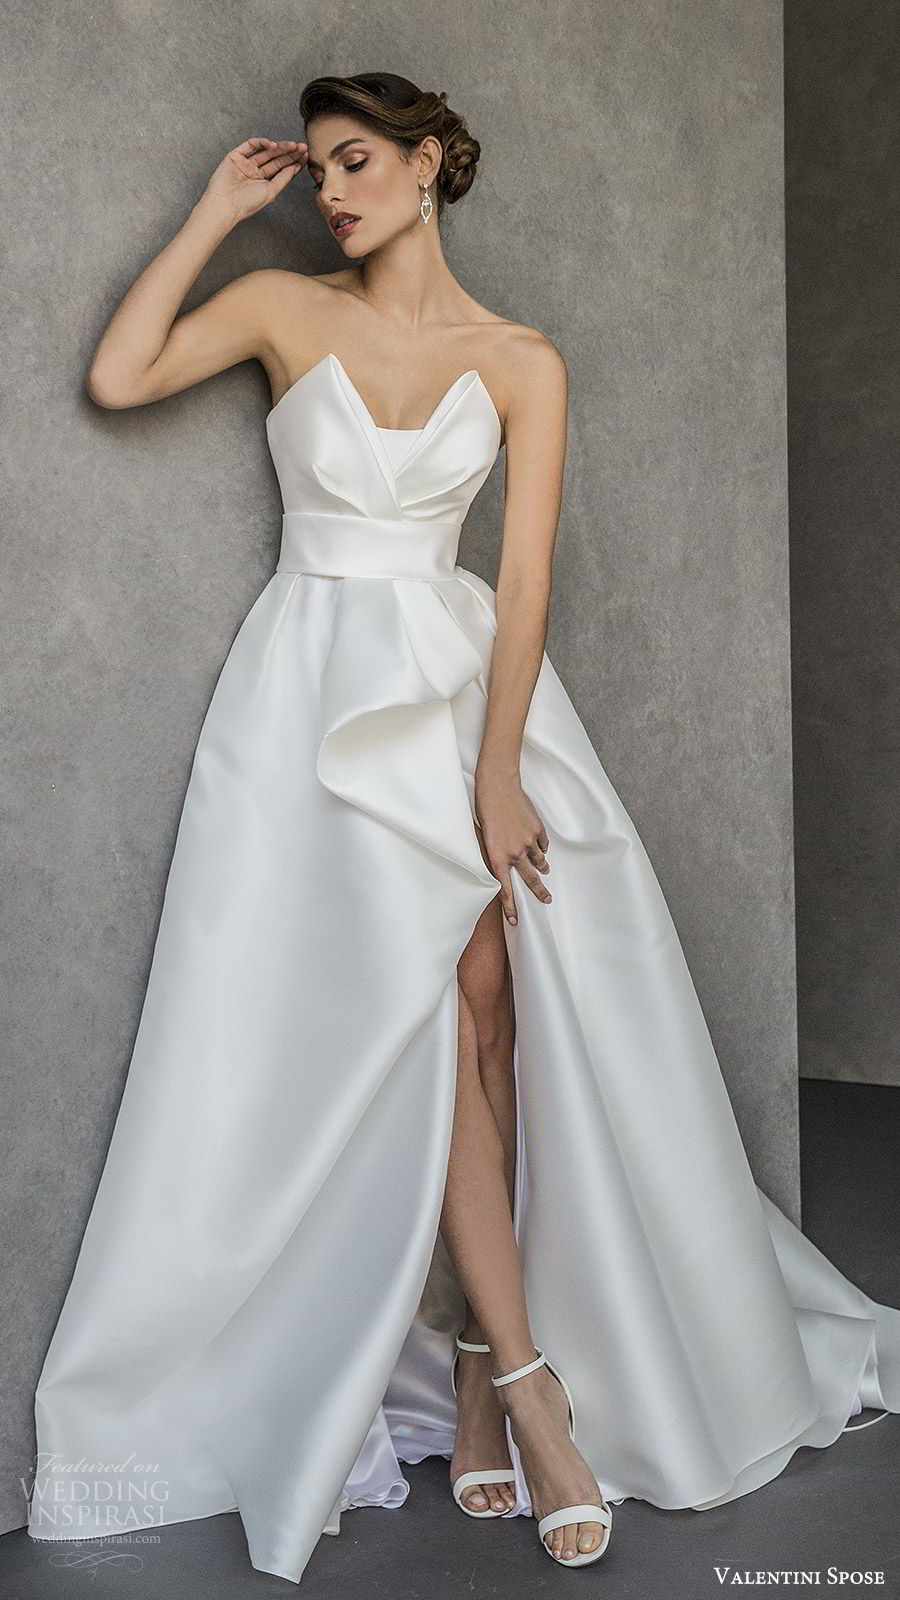 valentini spose spring 2020 bridal strapless sweetheart neckline slit skirt a line ball gown wedding dress (20) elegant modern chapel train mv